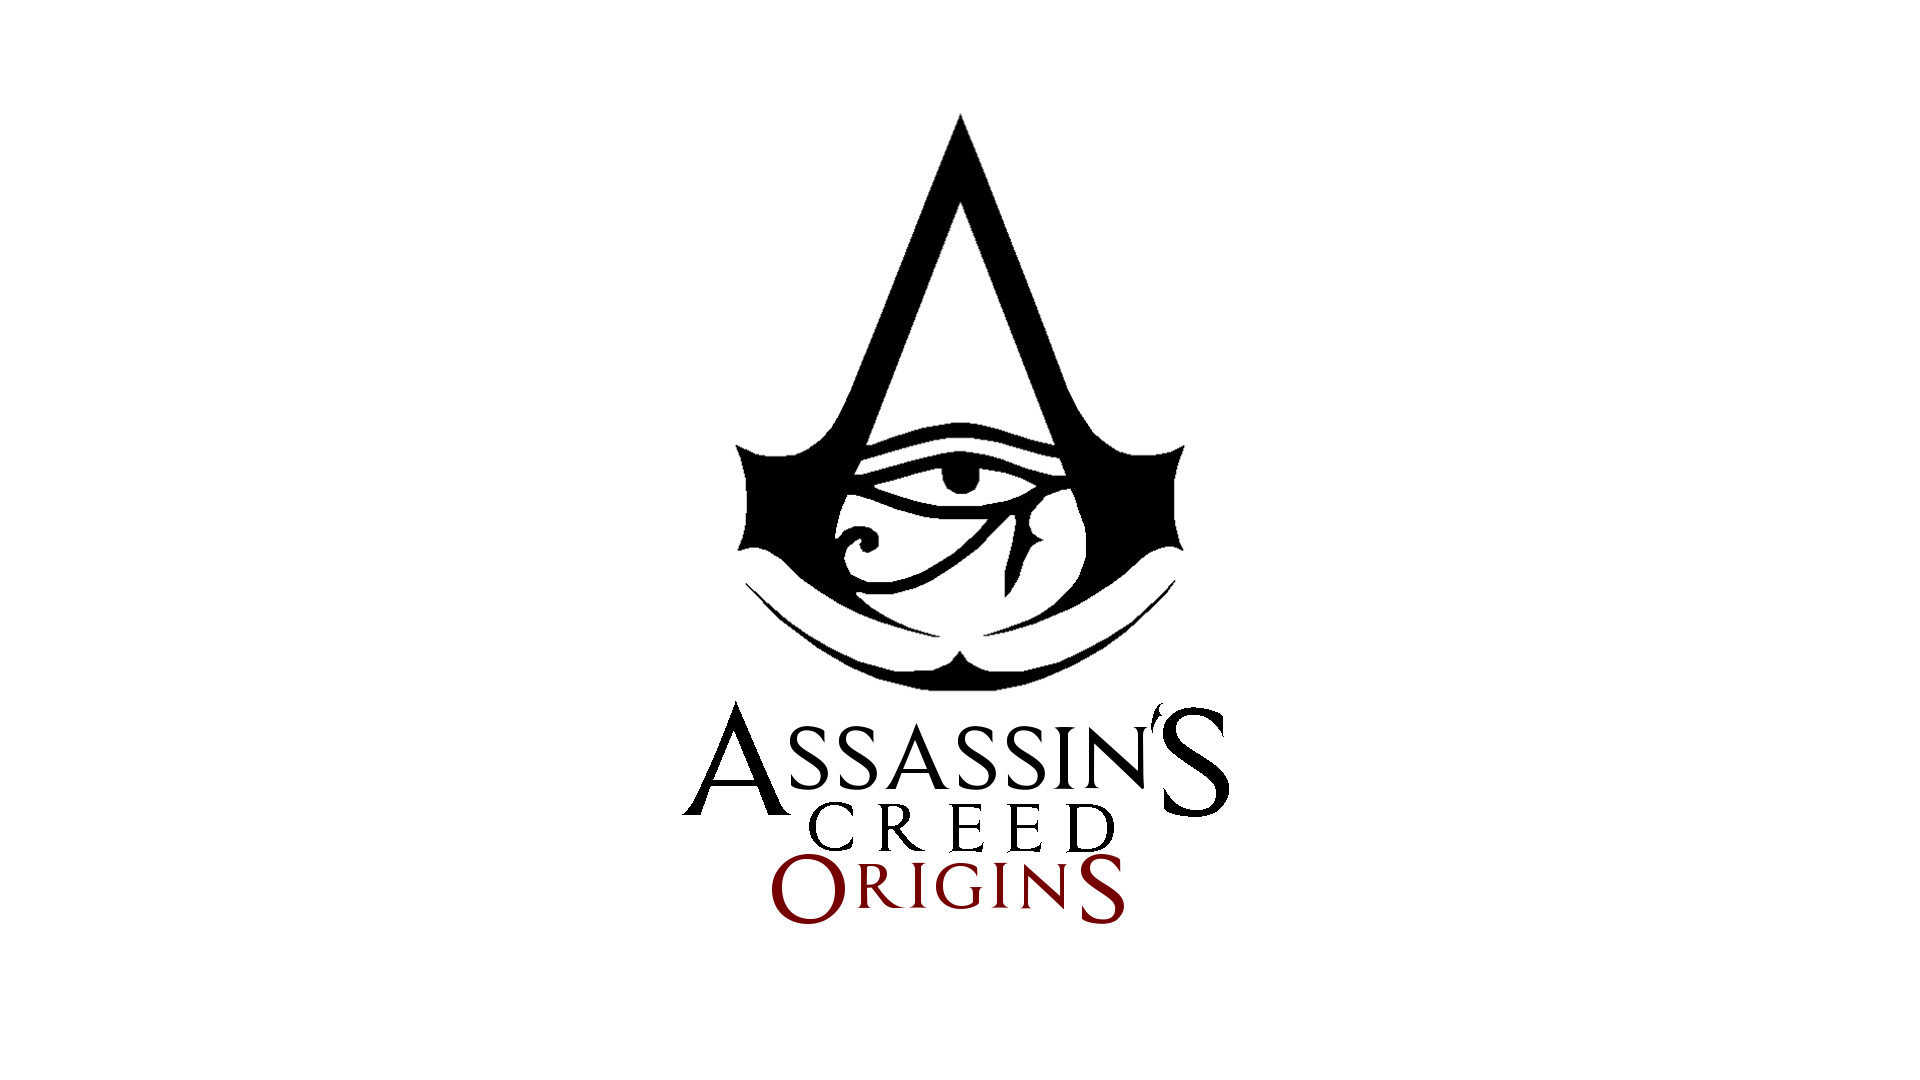 assassins creed origins logo wallpaper 4k